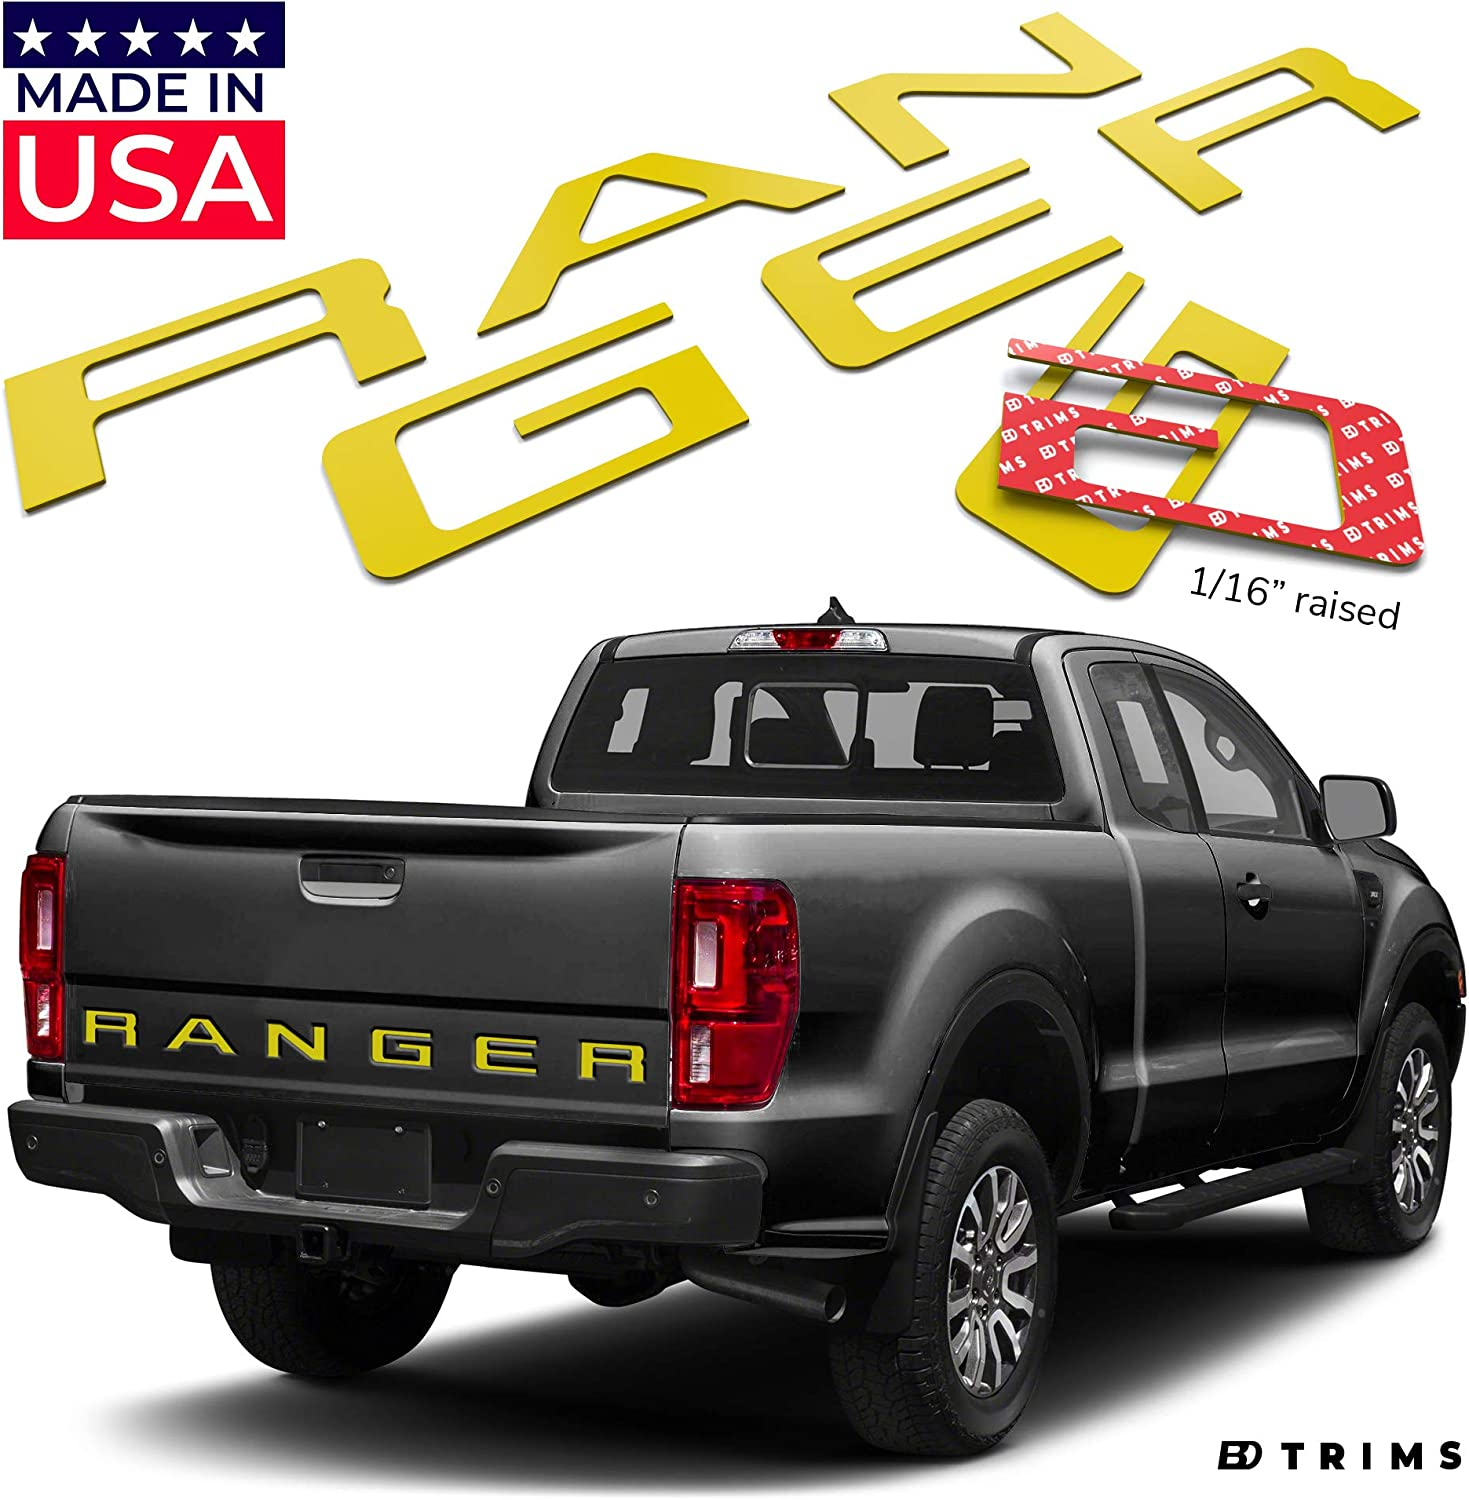 BDTrims Tailgate Raised Letters Compatible with 2019 2020 Ranger Models Red